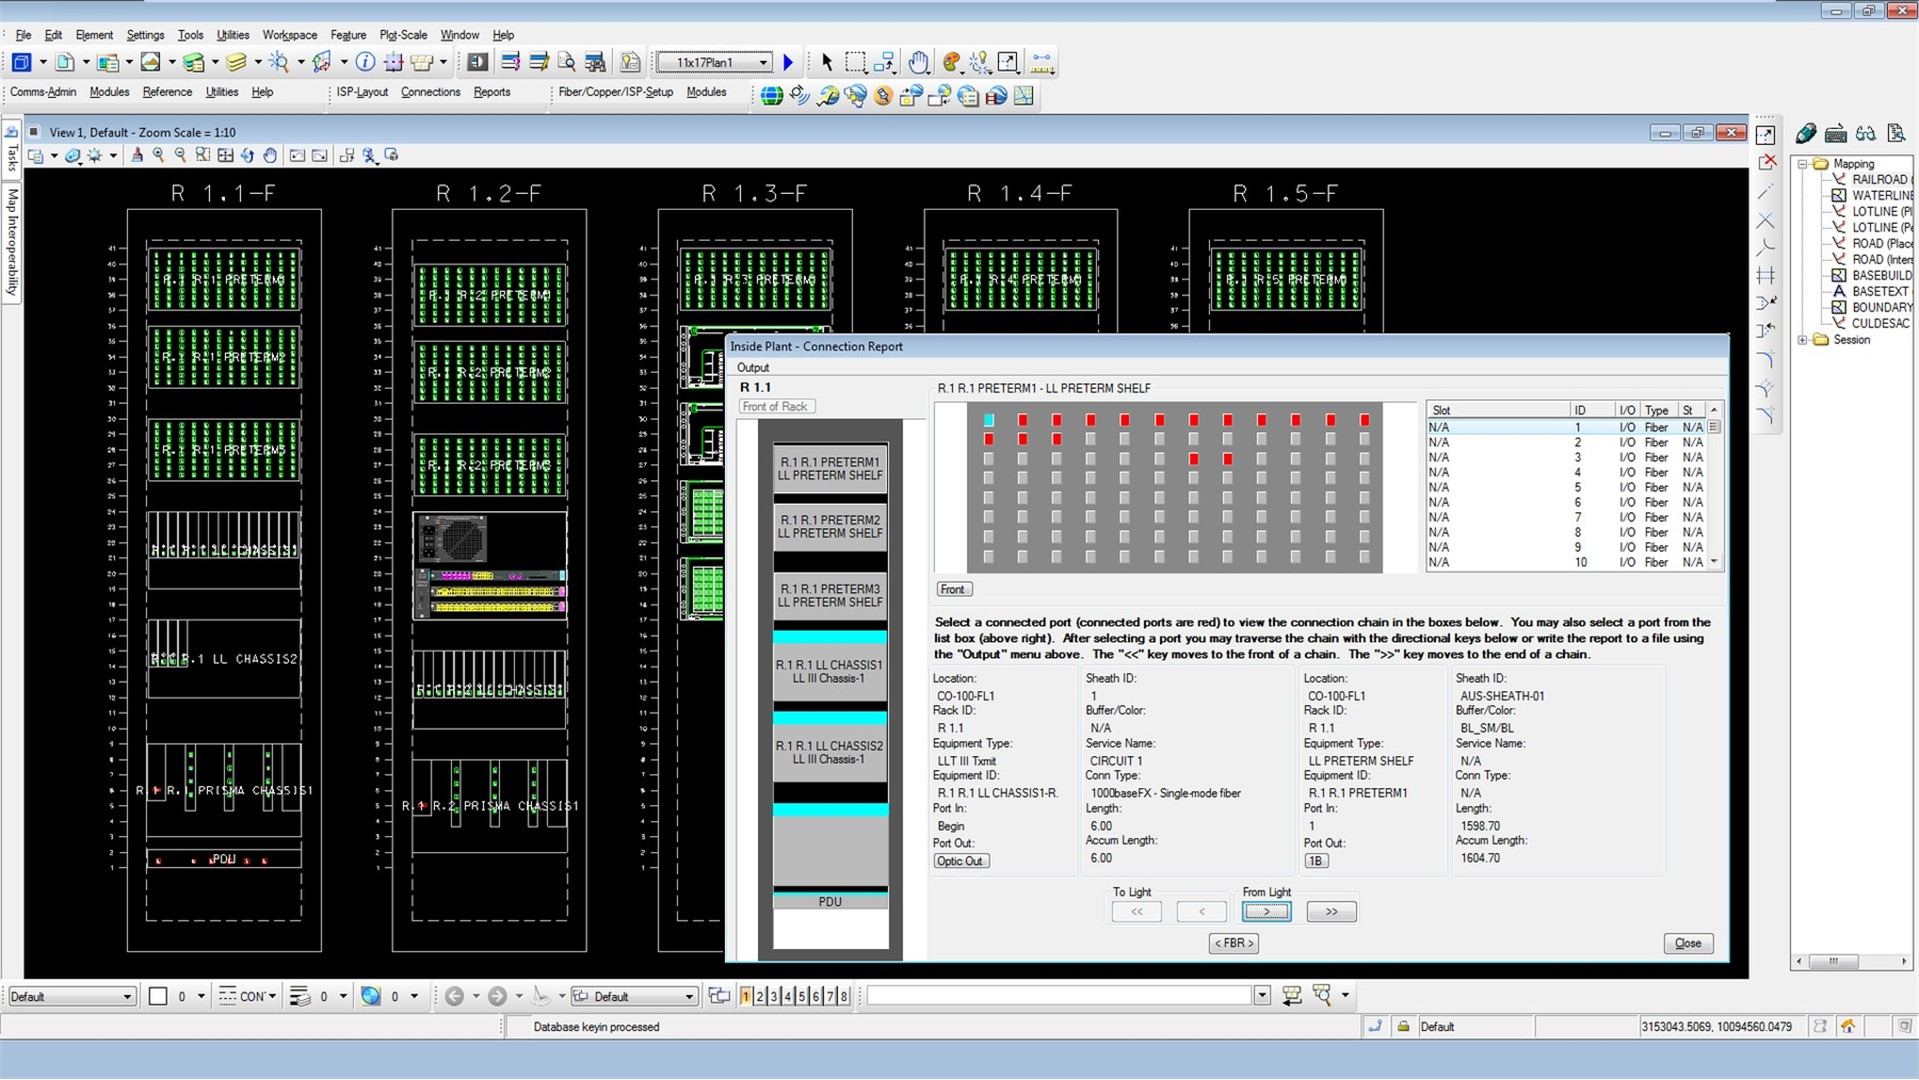 Bentley Inside Plant Network Facilities Design Software Structured Wiring System Schematic And Materials List Read More